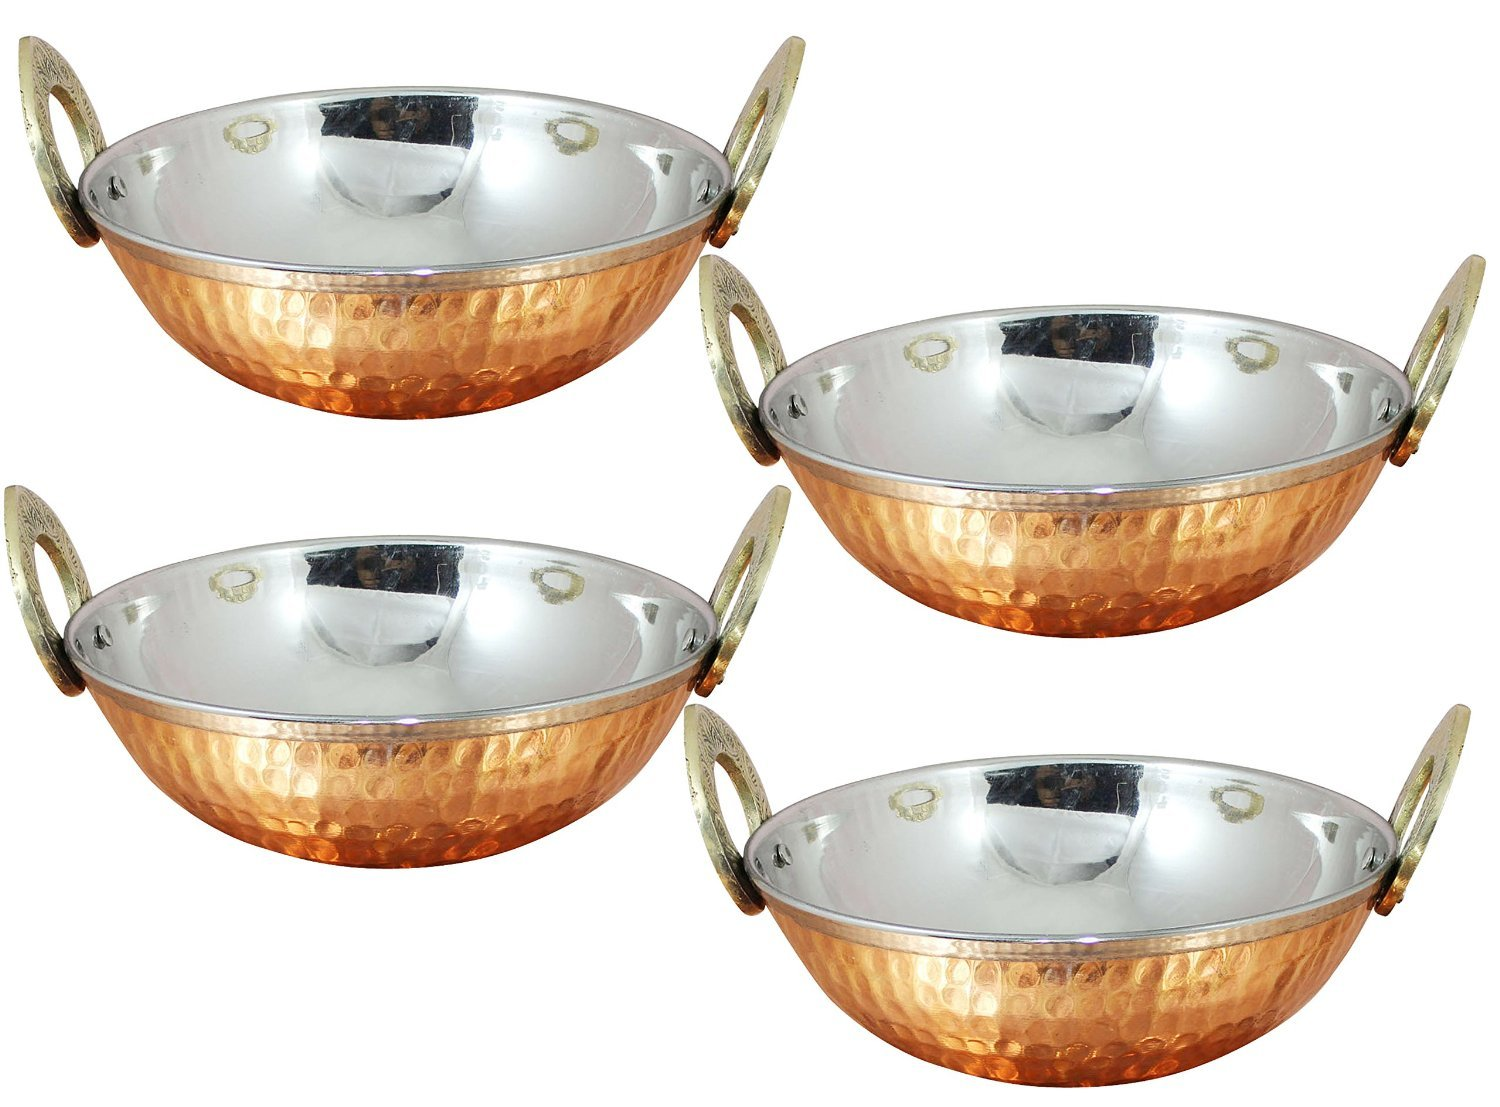 Avs Stores Set of 4, Indian Copper Serveware Karahi Vegetable Dinner Bowl with Solid Brass Handle for Indian Food, Diameter- 15 Cm (6 Inches) Avs Stores ® AV_Tableware_Karahi_002_Set_4